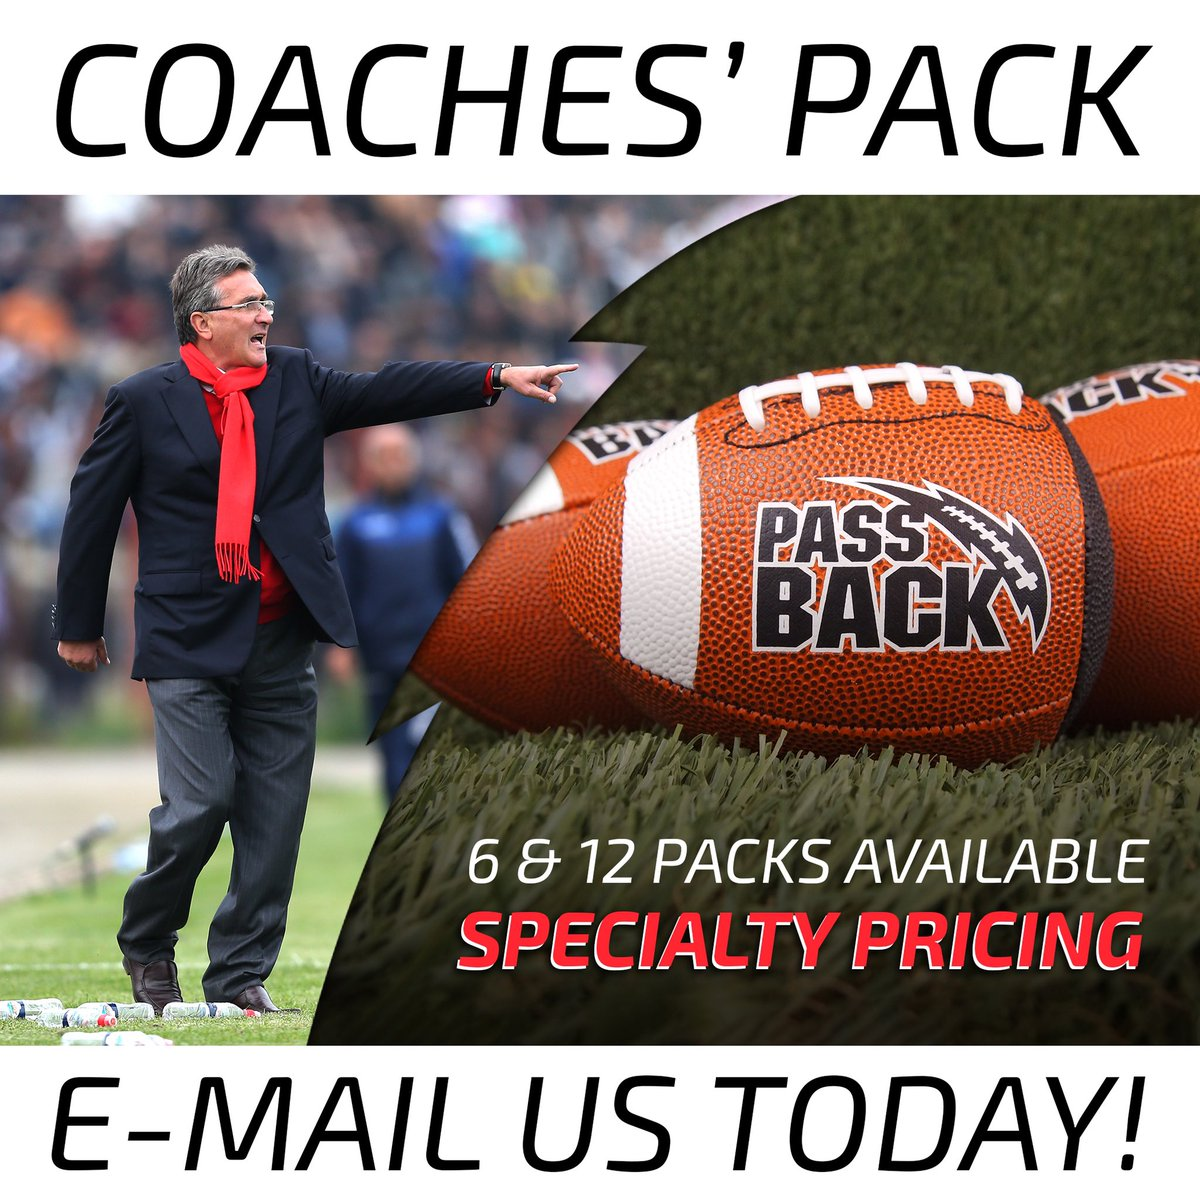 🏈 #FOOTBALL #COACHES 🧢 gear up for #springtraining and #summercamp with our 6/12 pack of #PassbackFootballs. E-mail/DM us for details 🤑 sales@passbacksports.com #quarterbacktraining #footballcamp #footballdrills #youthfootball #footballcoach #flagfootball